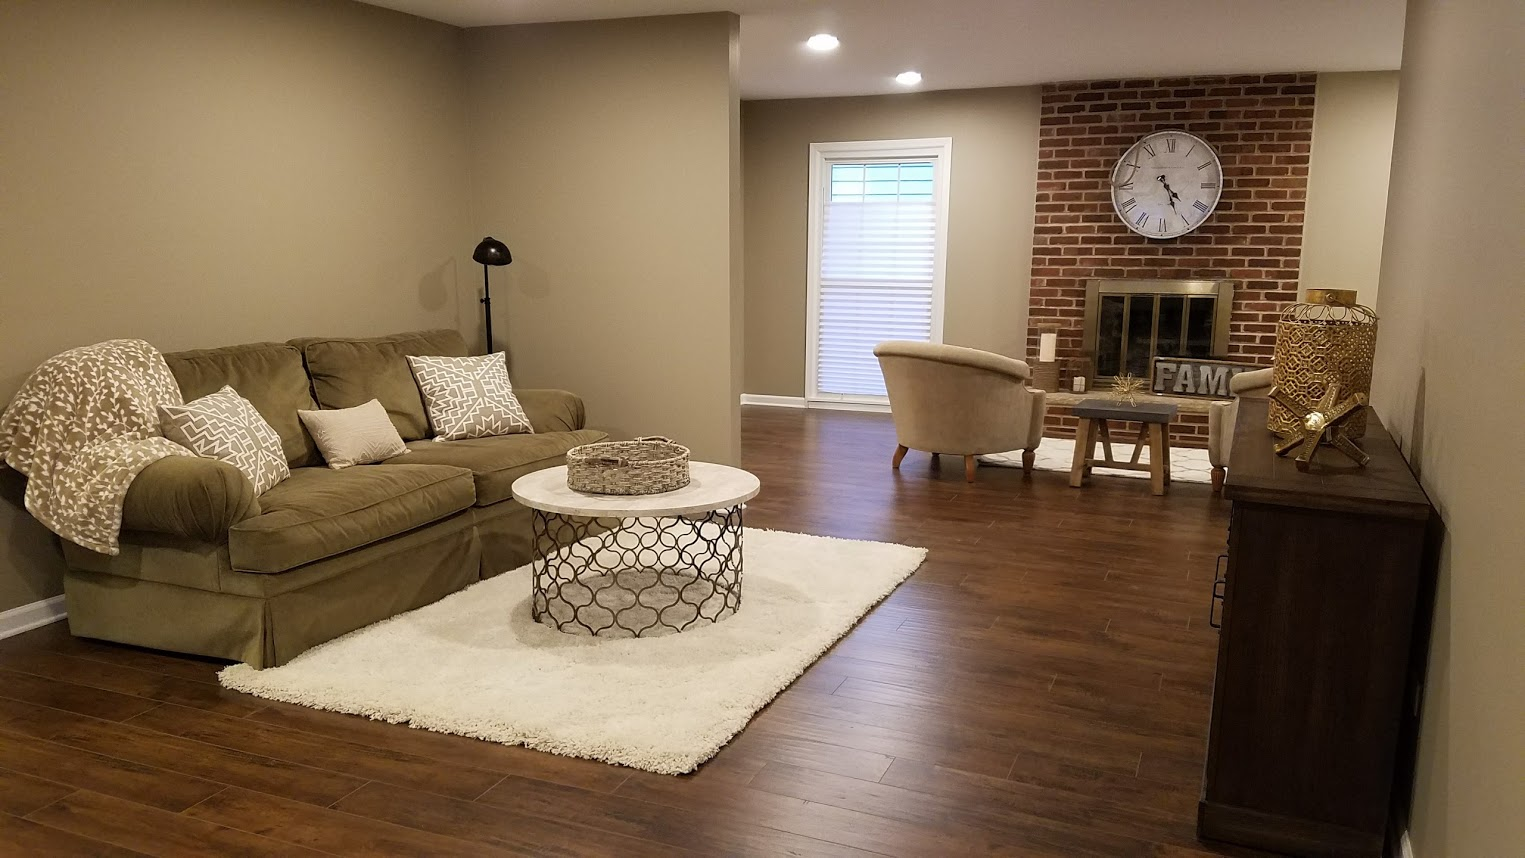 Living Room remodeling project built by Kure Construction in Naperville, IL.